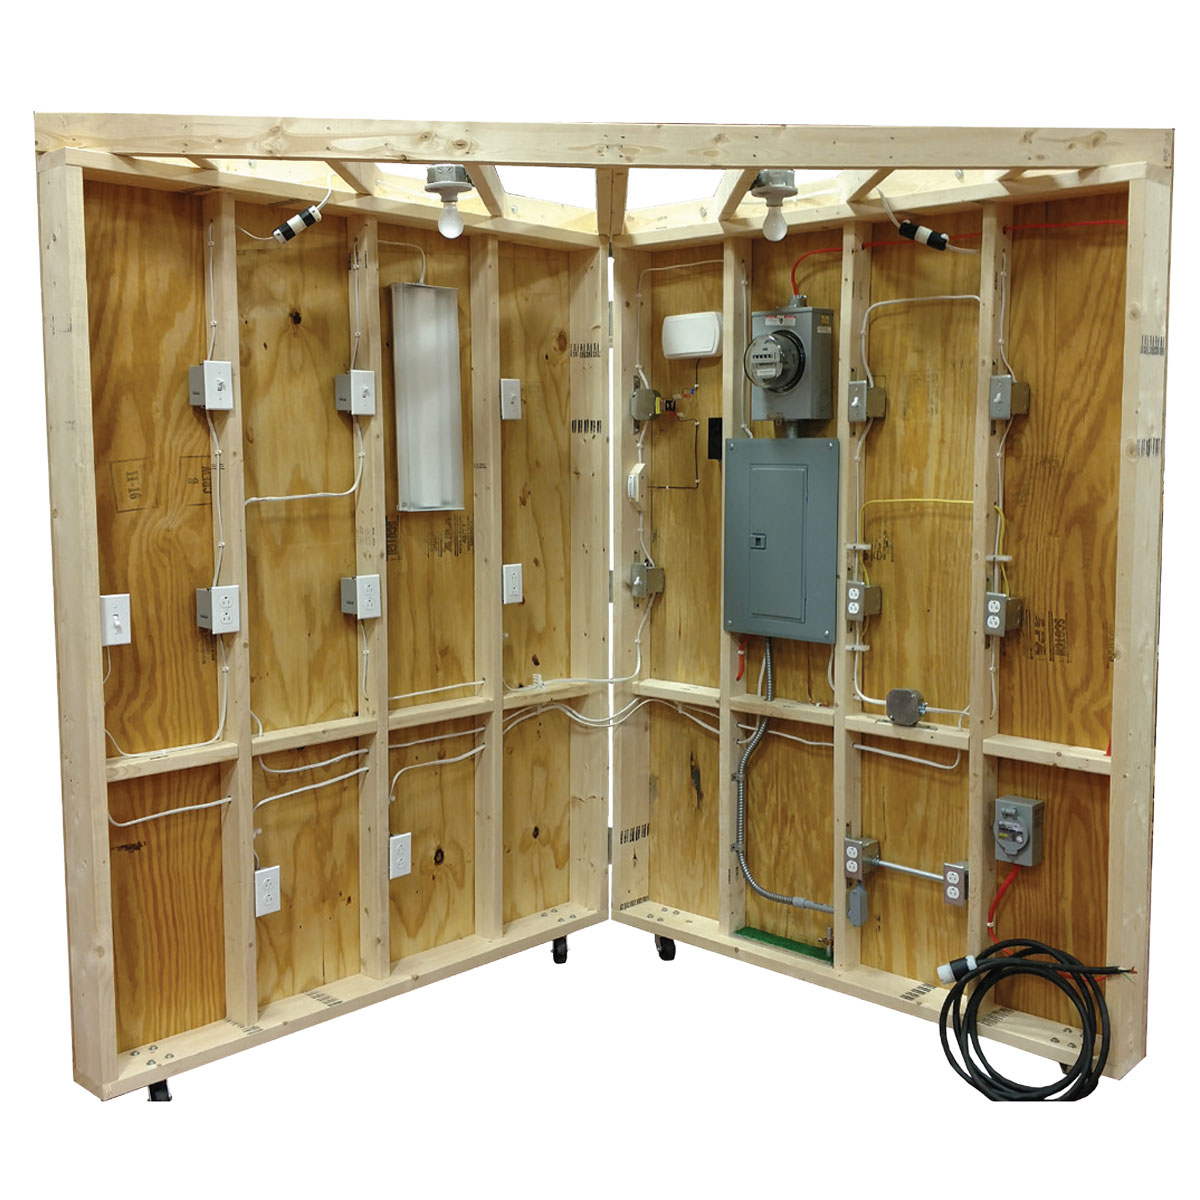 hight resolution of tue 200 residential wiring demonstrator